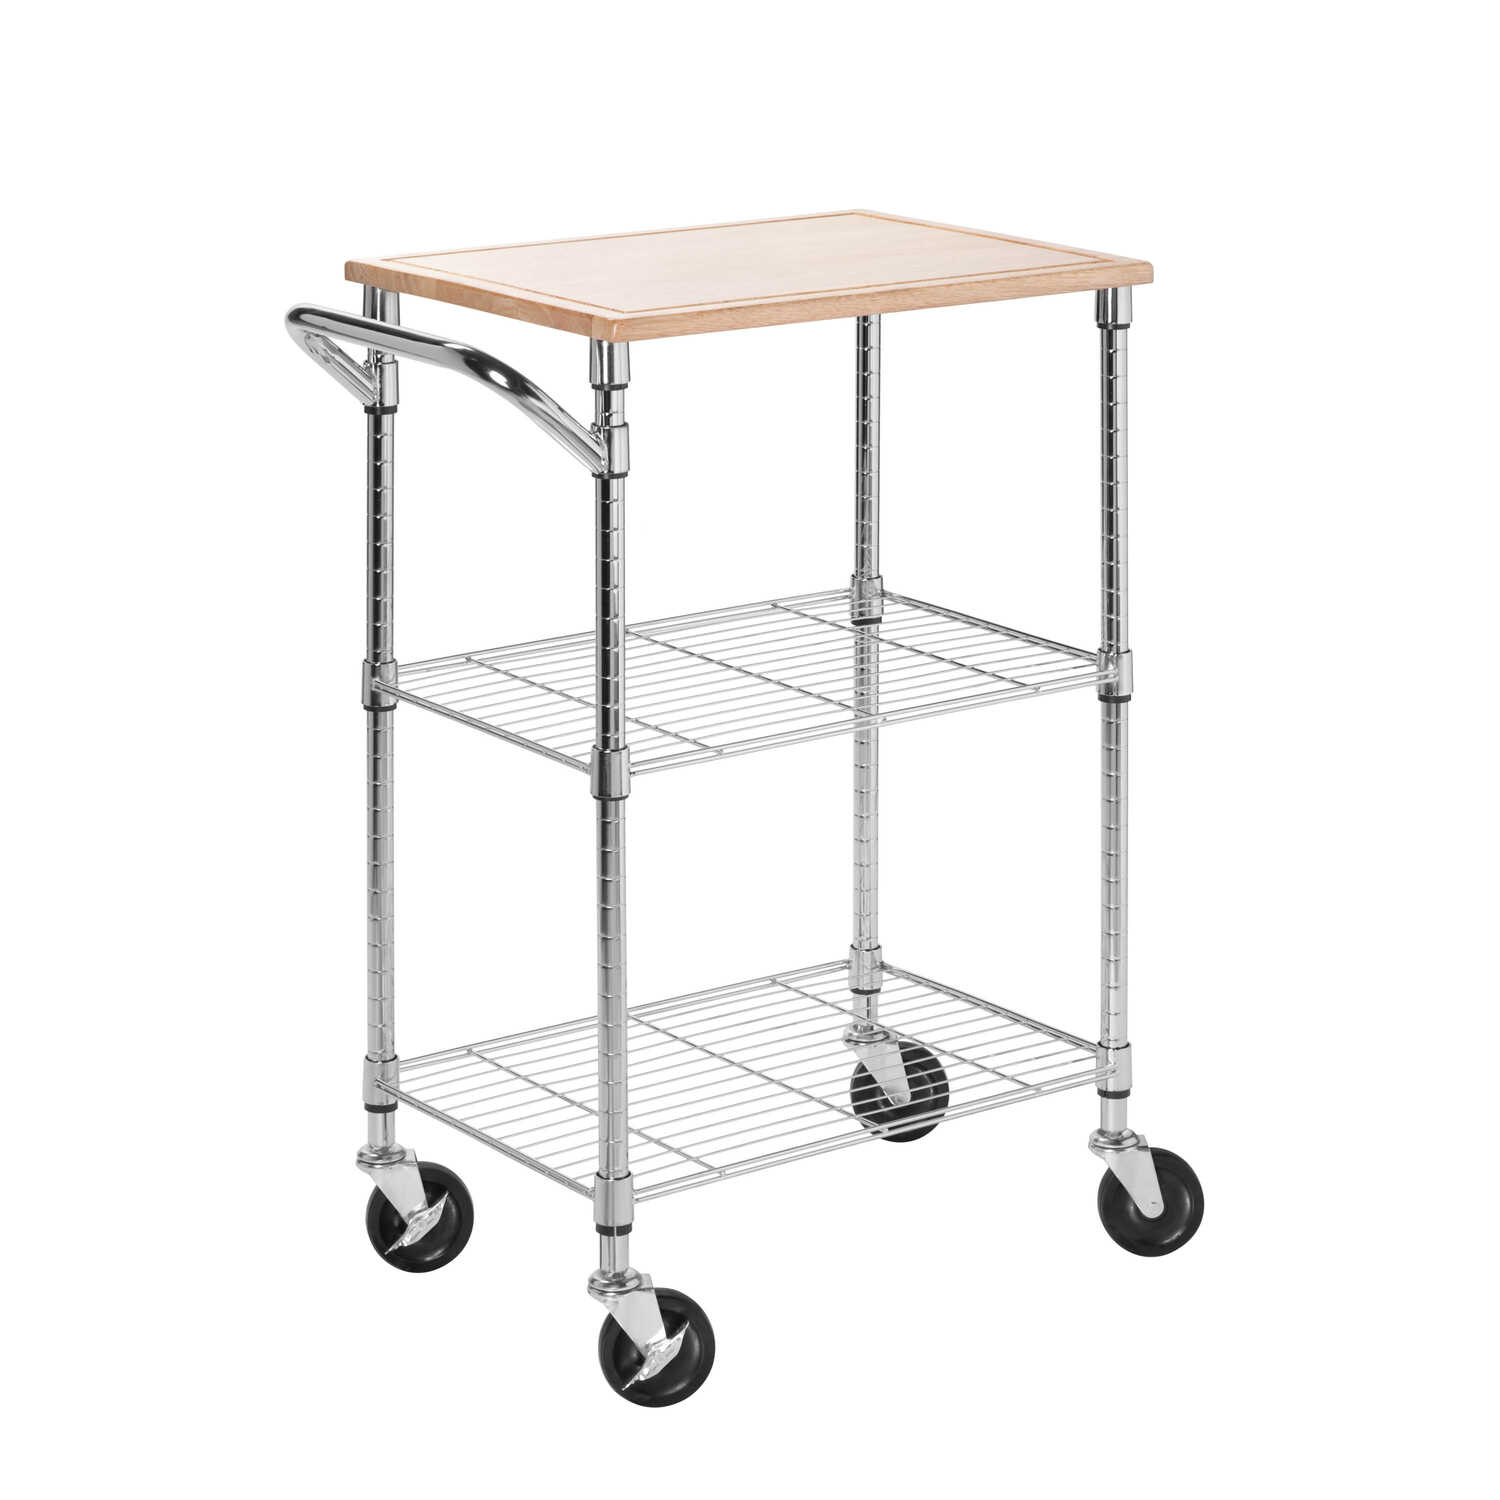 Honey Can Do  37-1/2 in. H x 17-3/4 in. D x 28-1/2 in. W Utility Cart